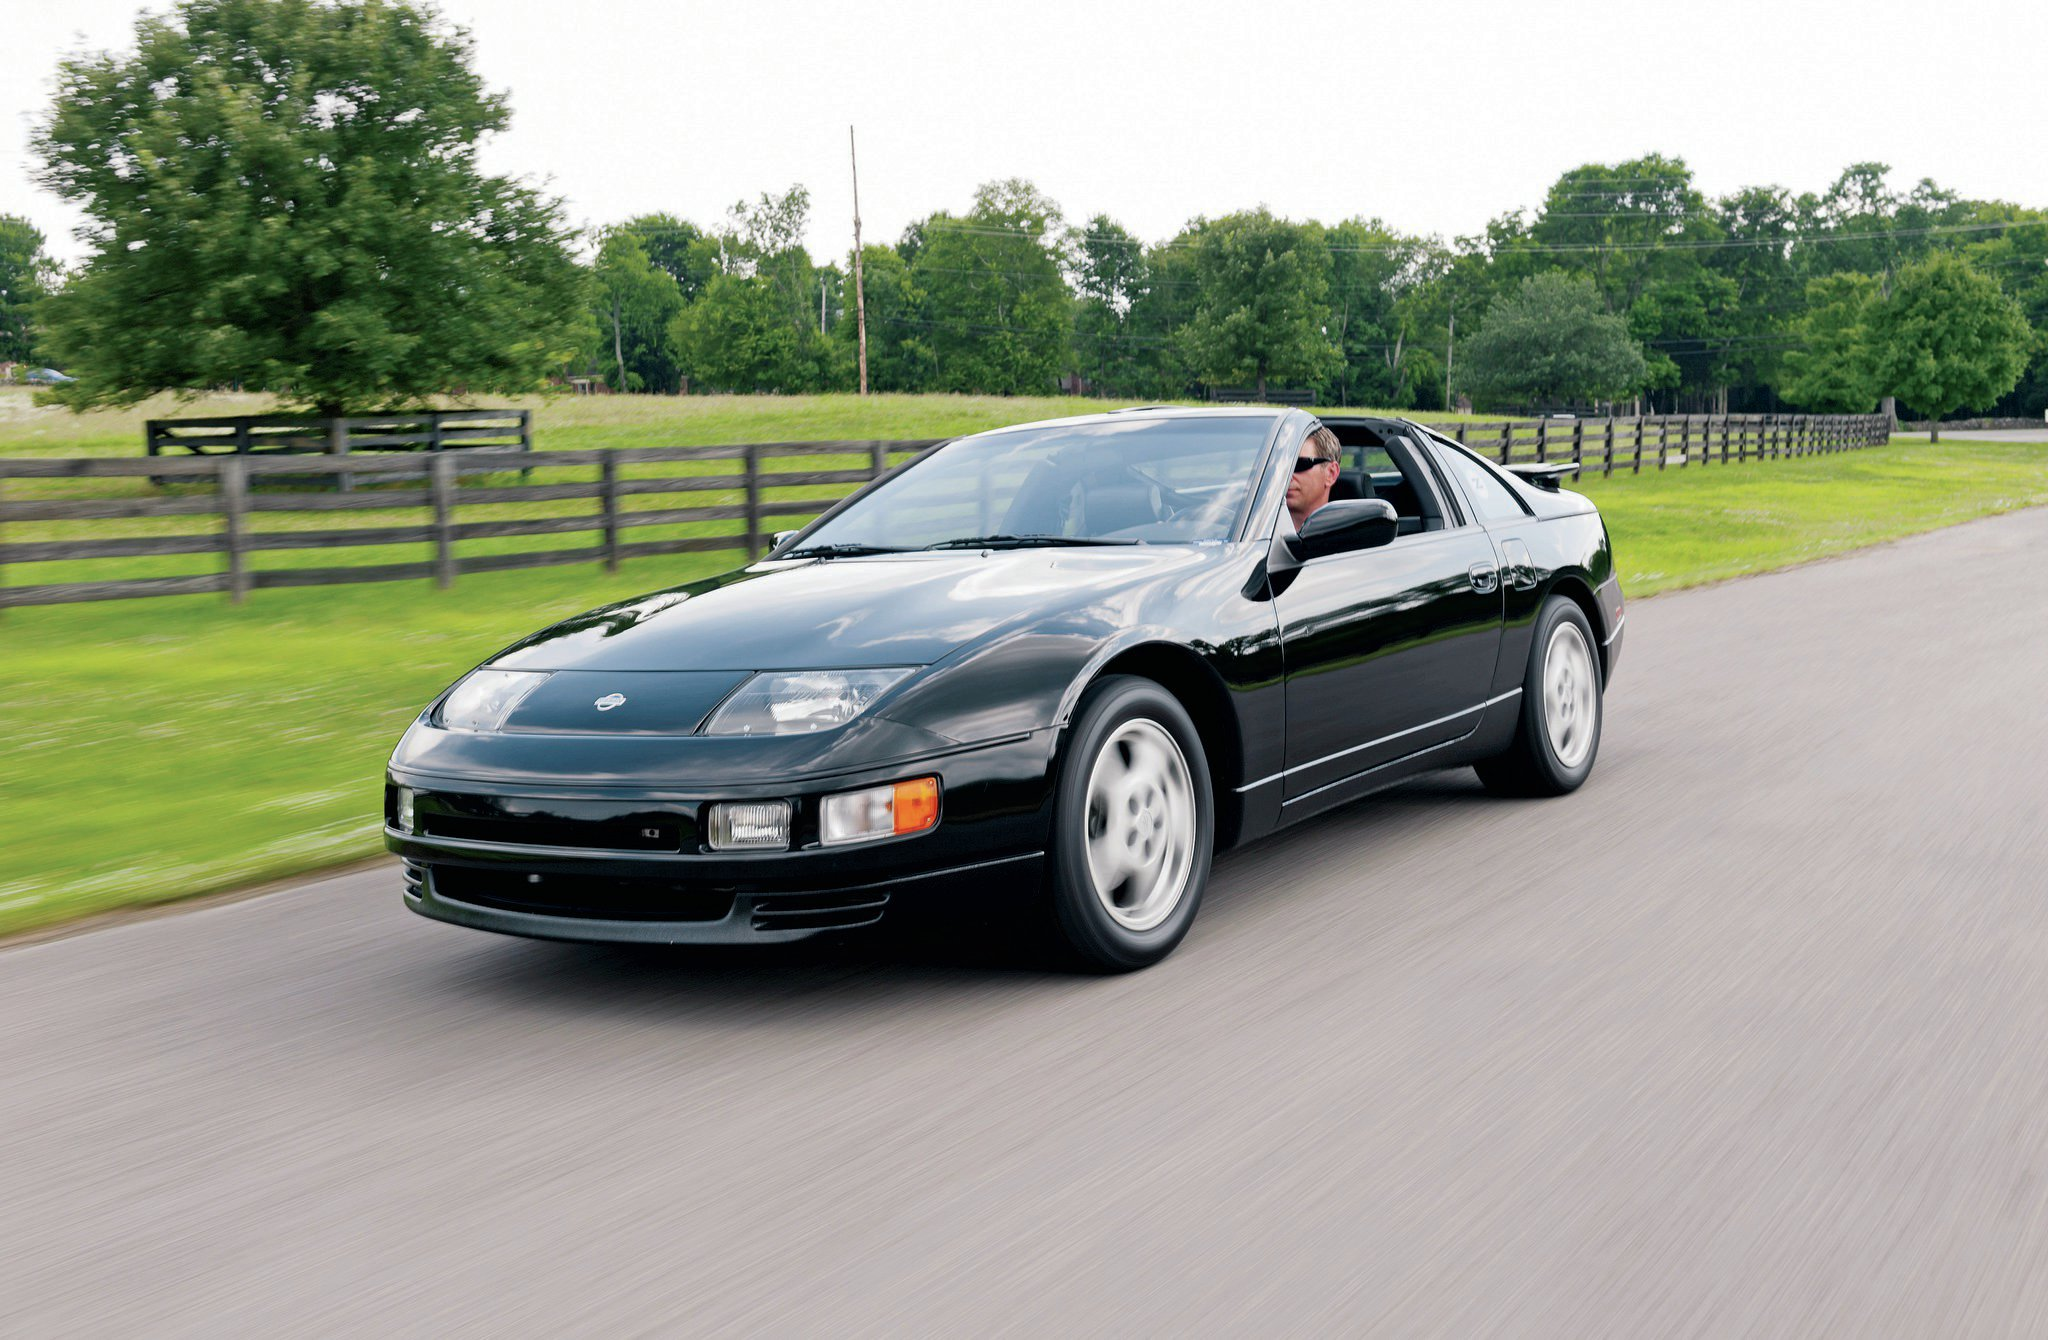 Bronco Cars Wallpaper Collectible Classic 1990 1996 Nissan 300zx